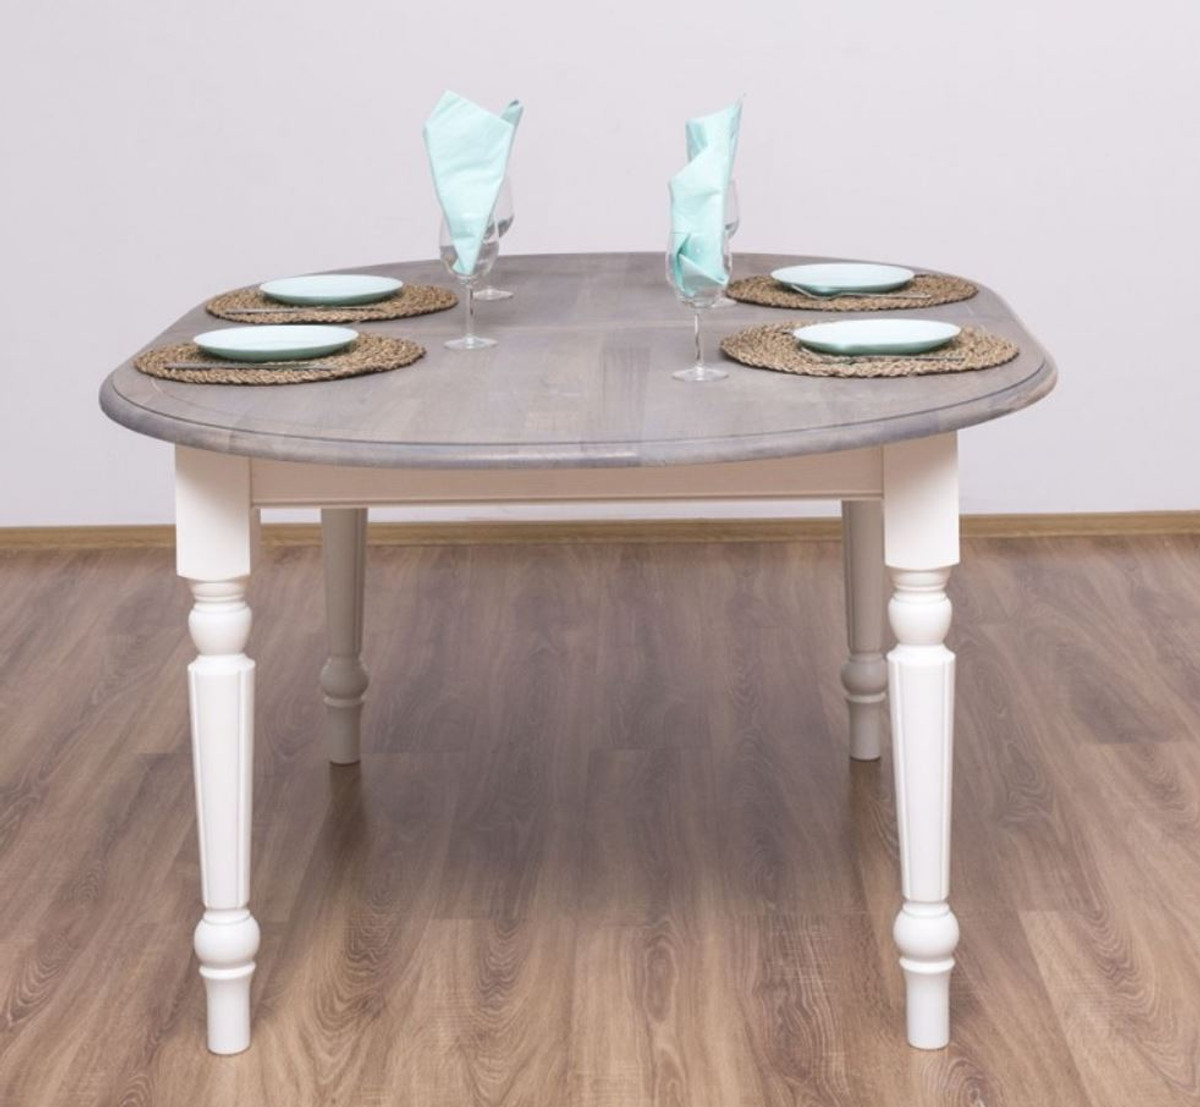 Casa Padrino country style dining table gray / white 9 x 9 x H ...